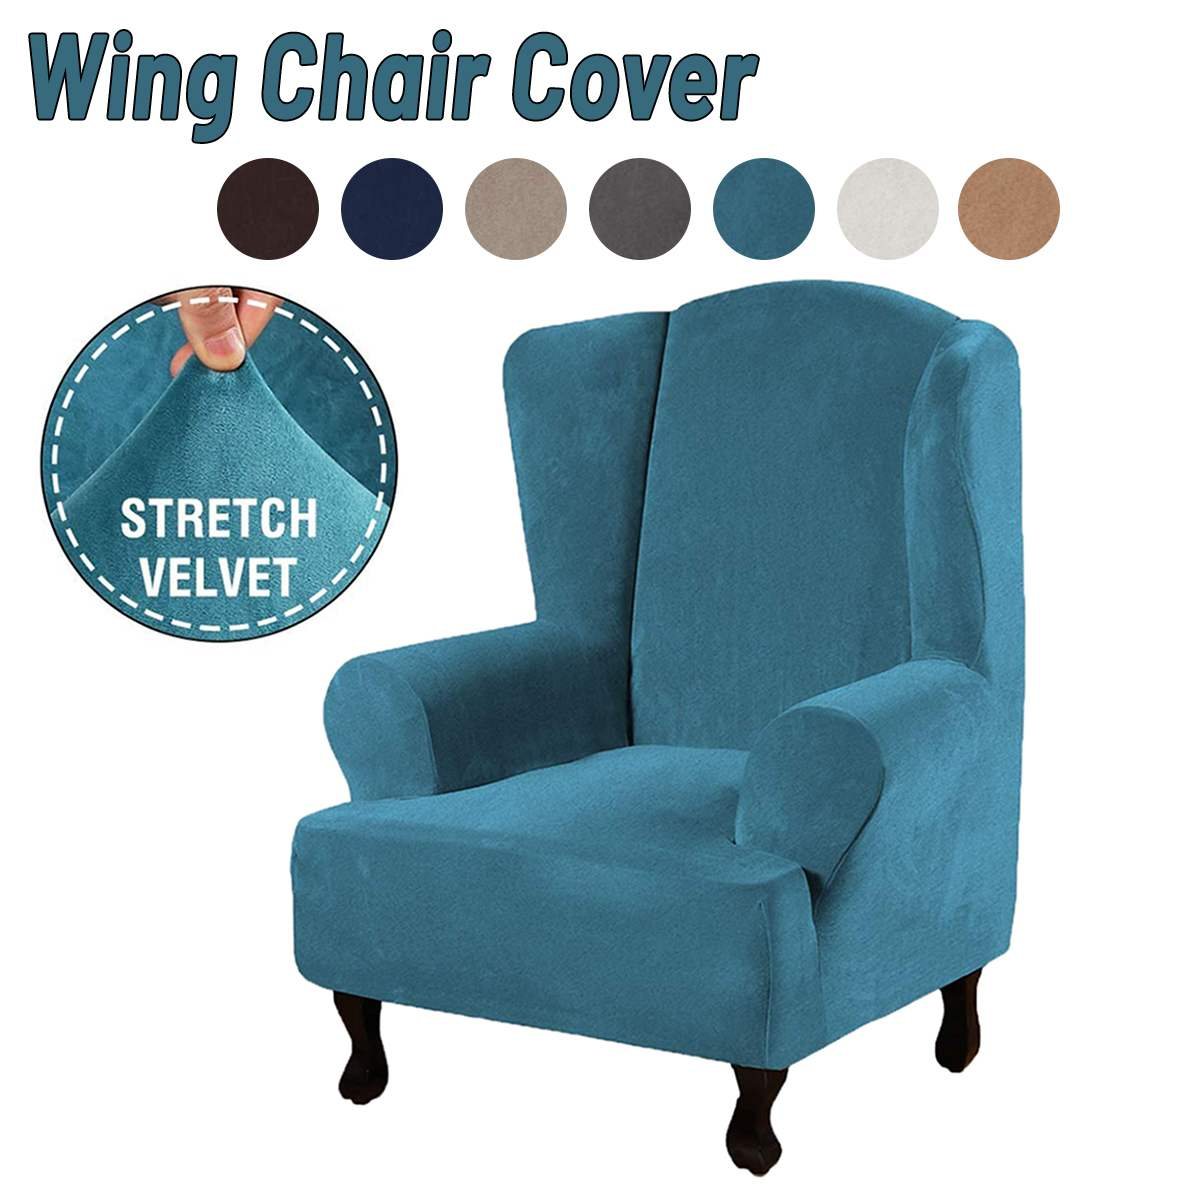 New High Grade Velvet Sofa Chair Cover Waterproof Dust-proof Stretch Wing Chair Cover Wingback Armchair Protector Cover Furniture Cover Stretch